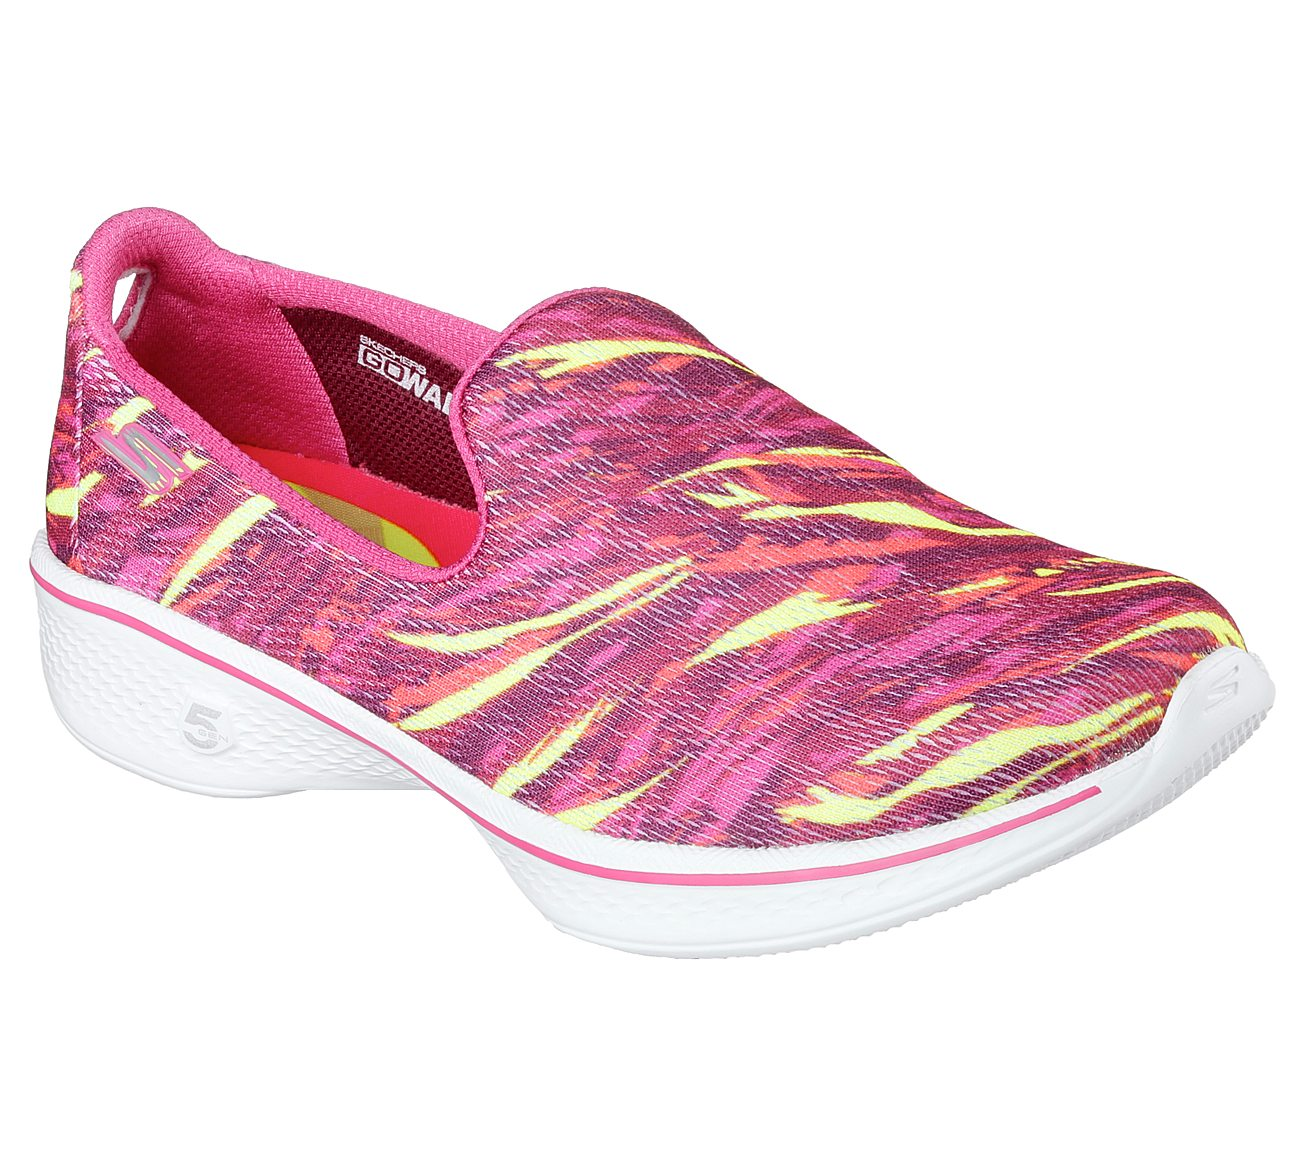 Skechers GOwalk 4  Electrify 6000 Hover to zoom Pink Multi